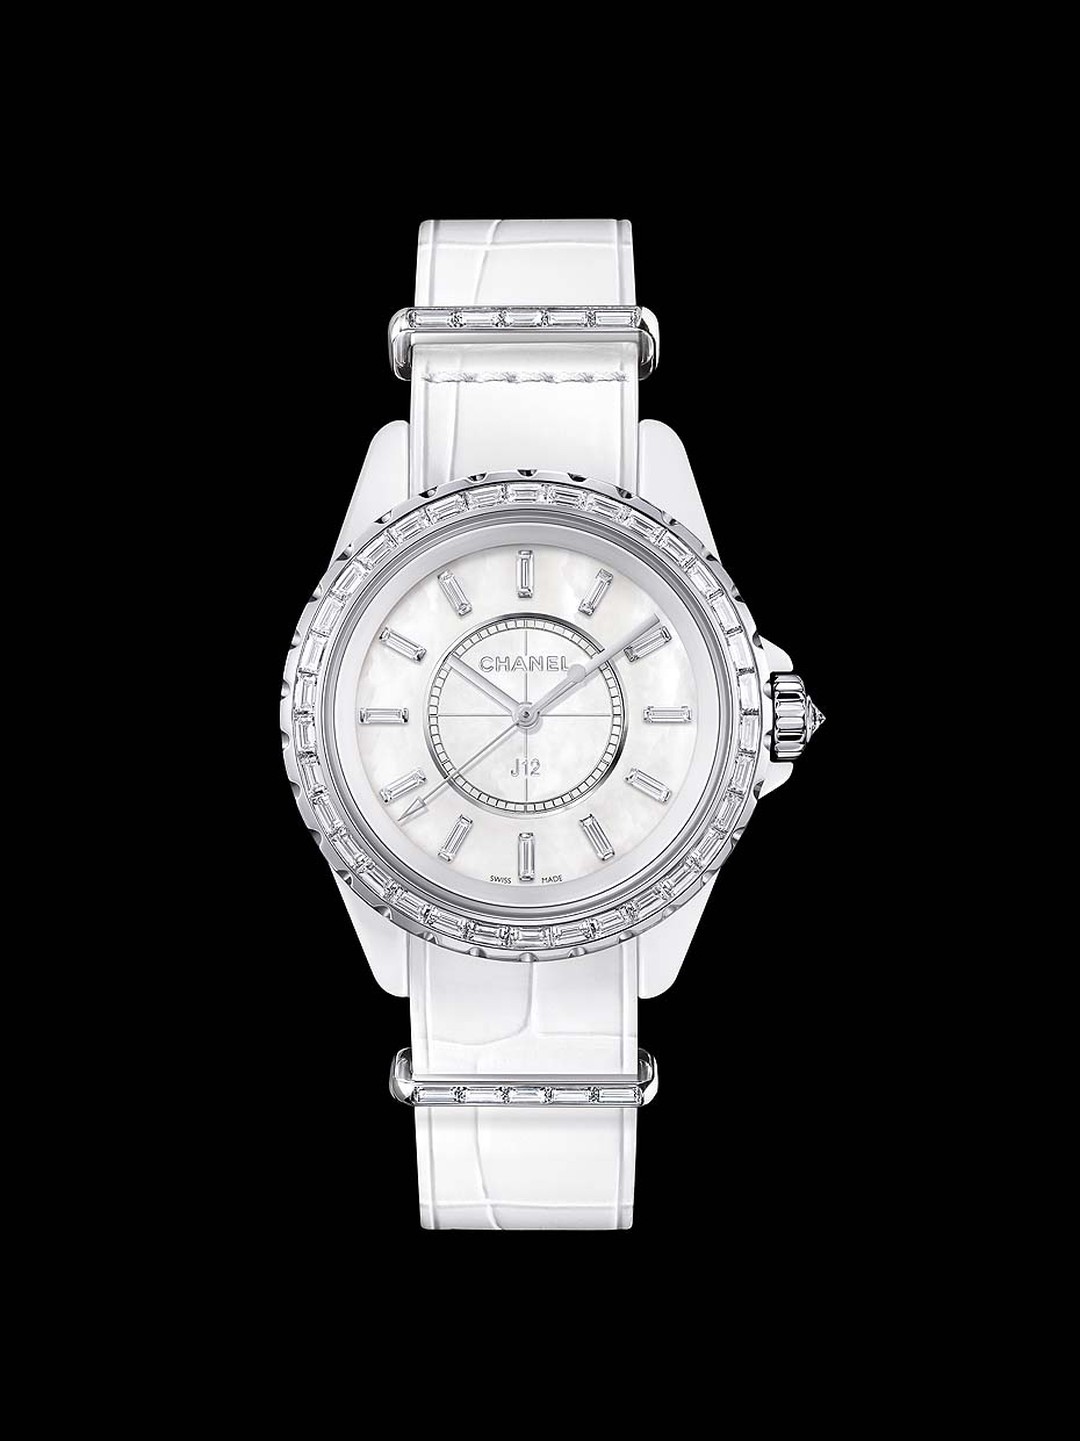 Chanel J12-G10 33mm watch in white high-tech ceramic and white gold case with a lovely mother-of-pearl dial and matching white alligator strap.